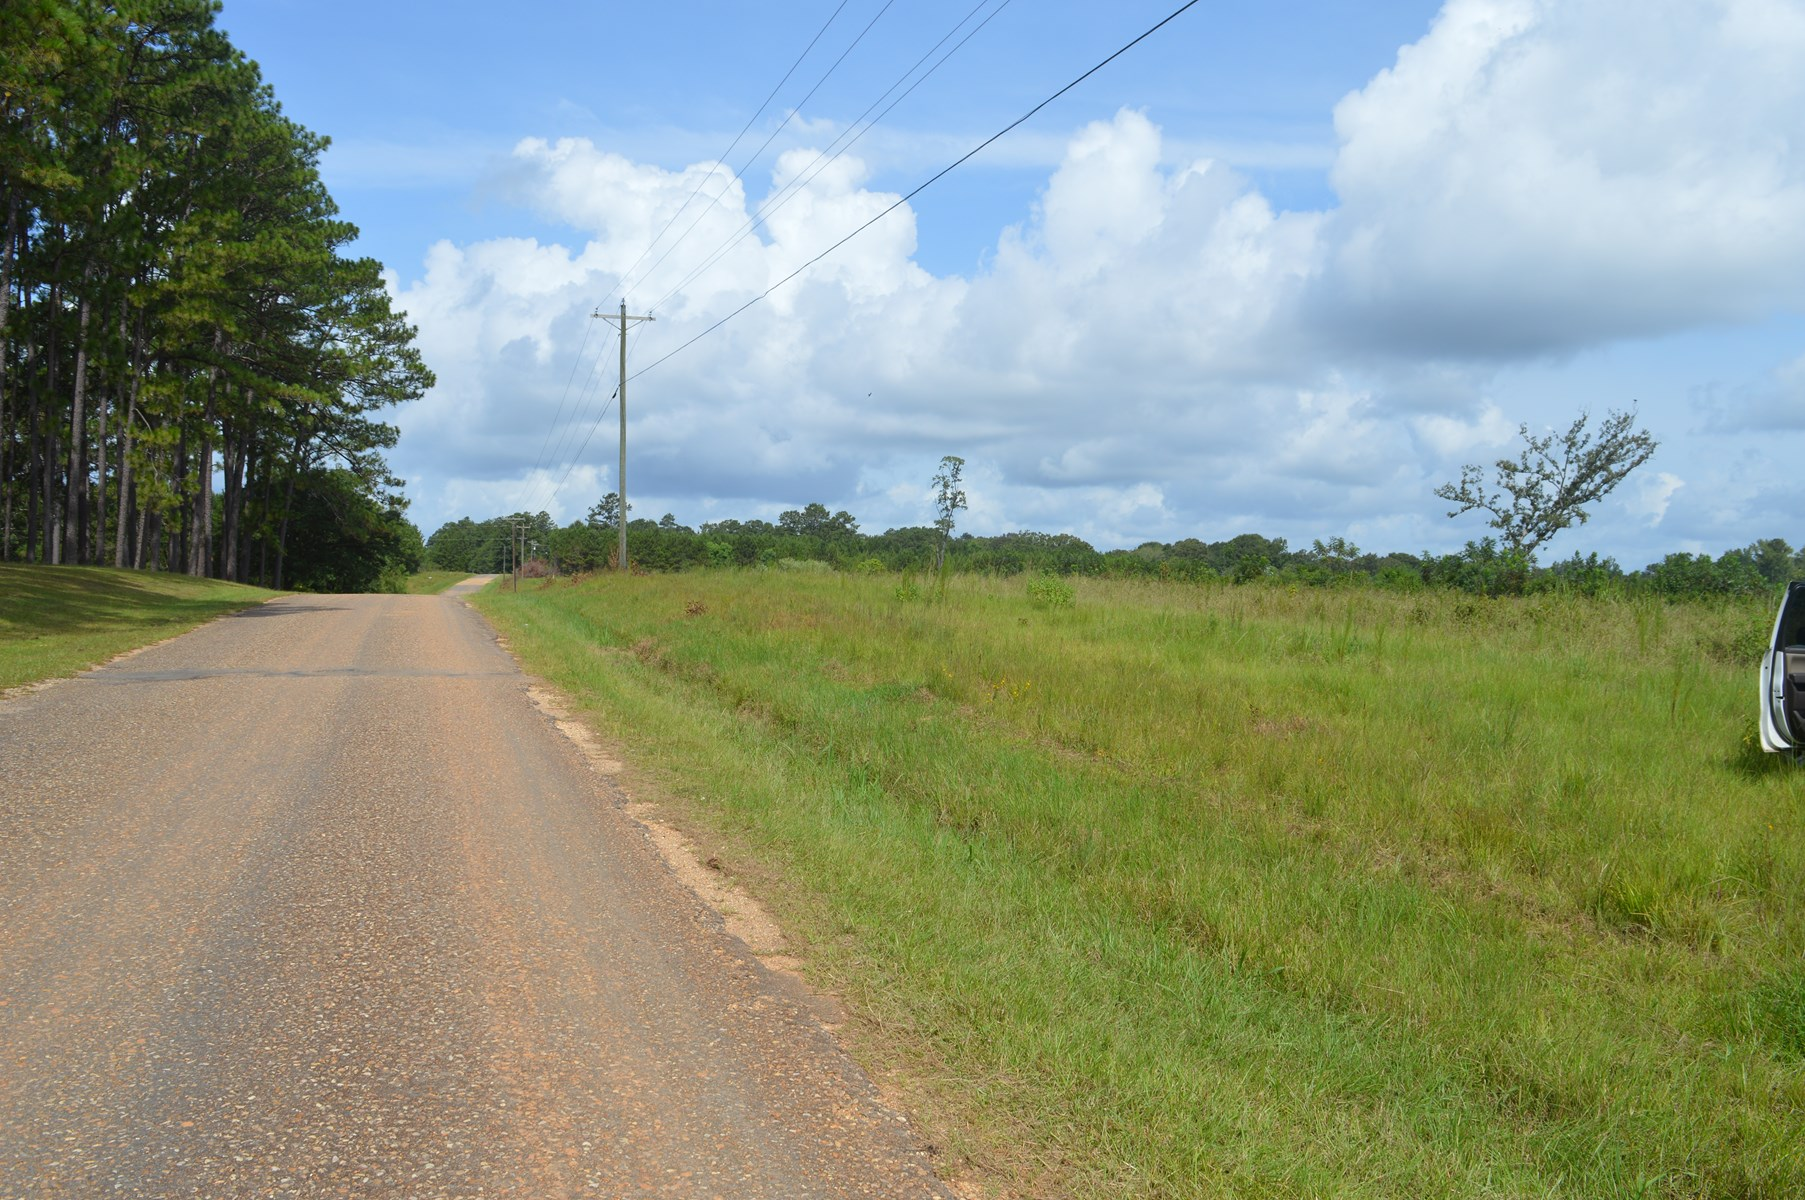 34.6 Acres Commercial/Industrial Land for Sale McComb, MS